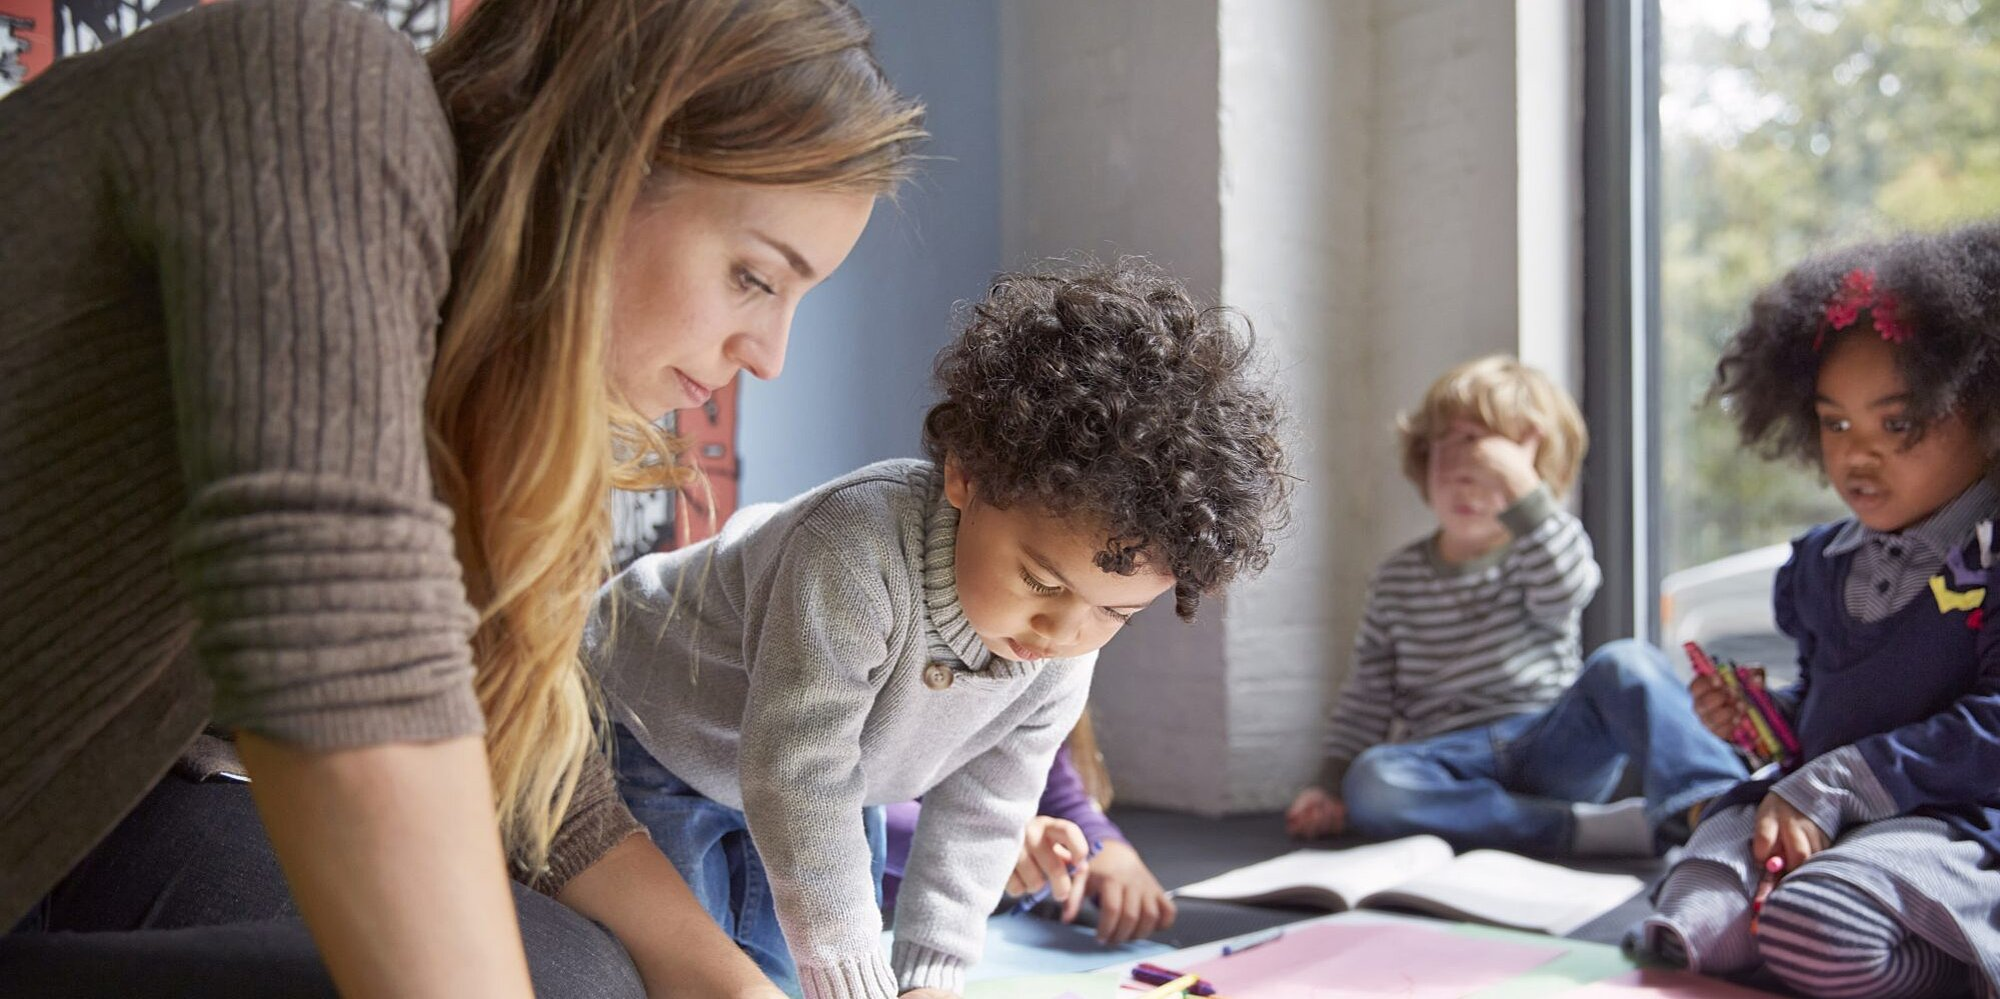 5 Essential Things Your Child Will Learn in Preschool